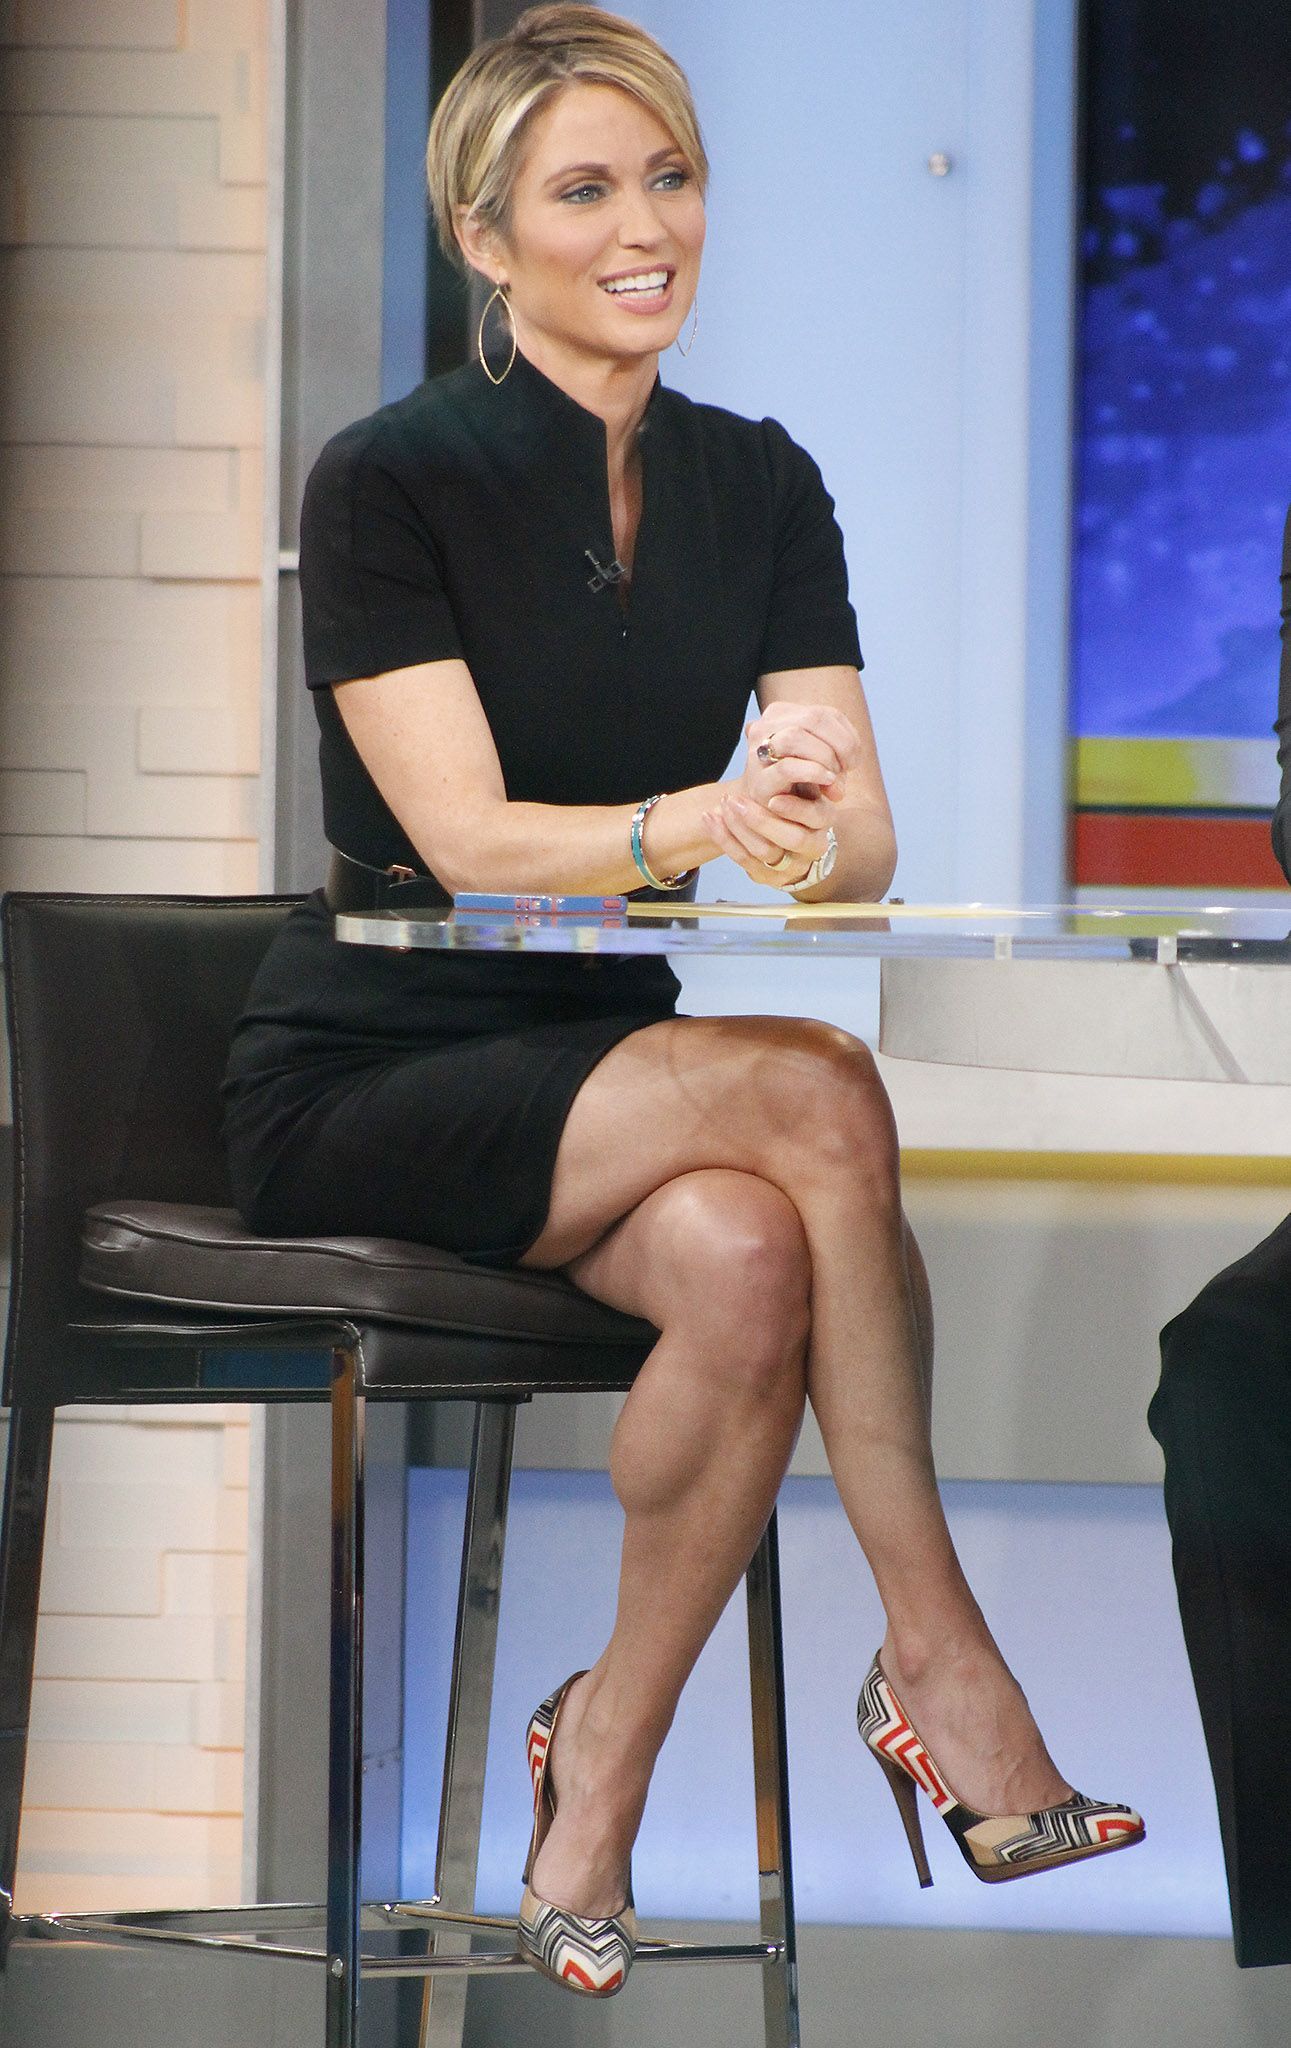 Amy Robach From Good Morning America Amy Robach Sports Hairstyles Female Crossfit Athletes